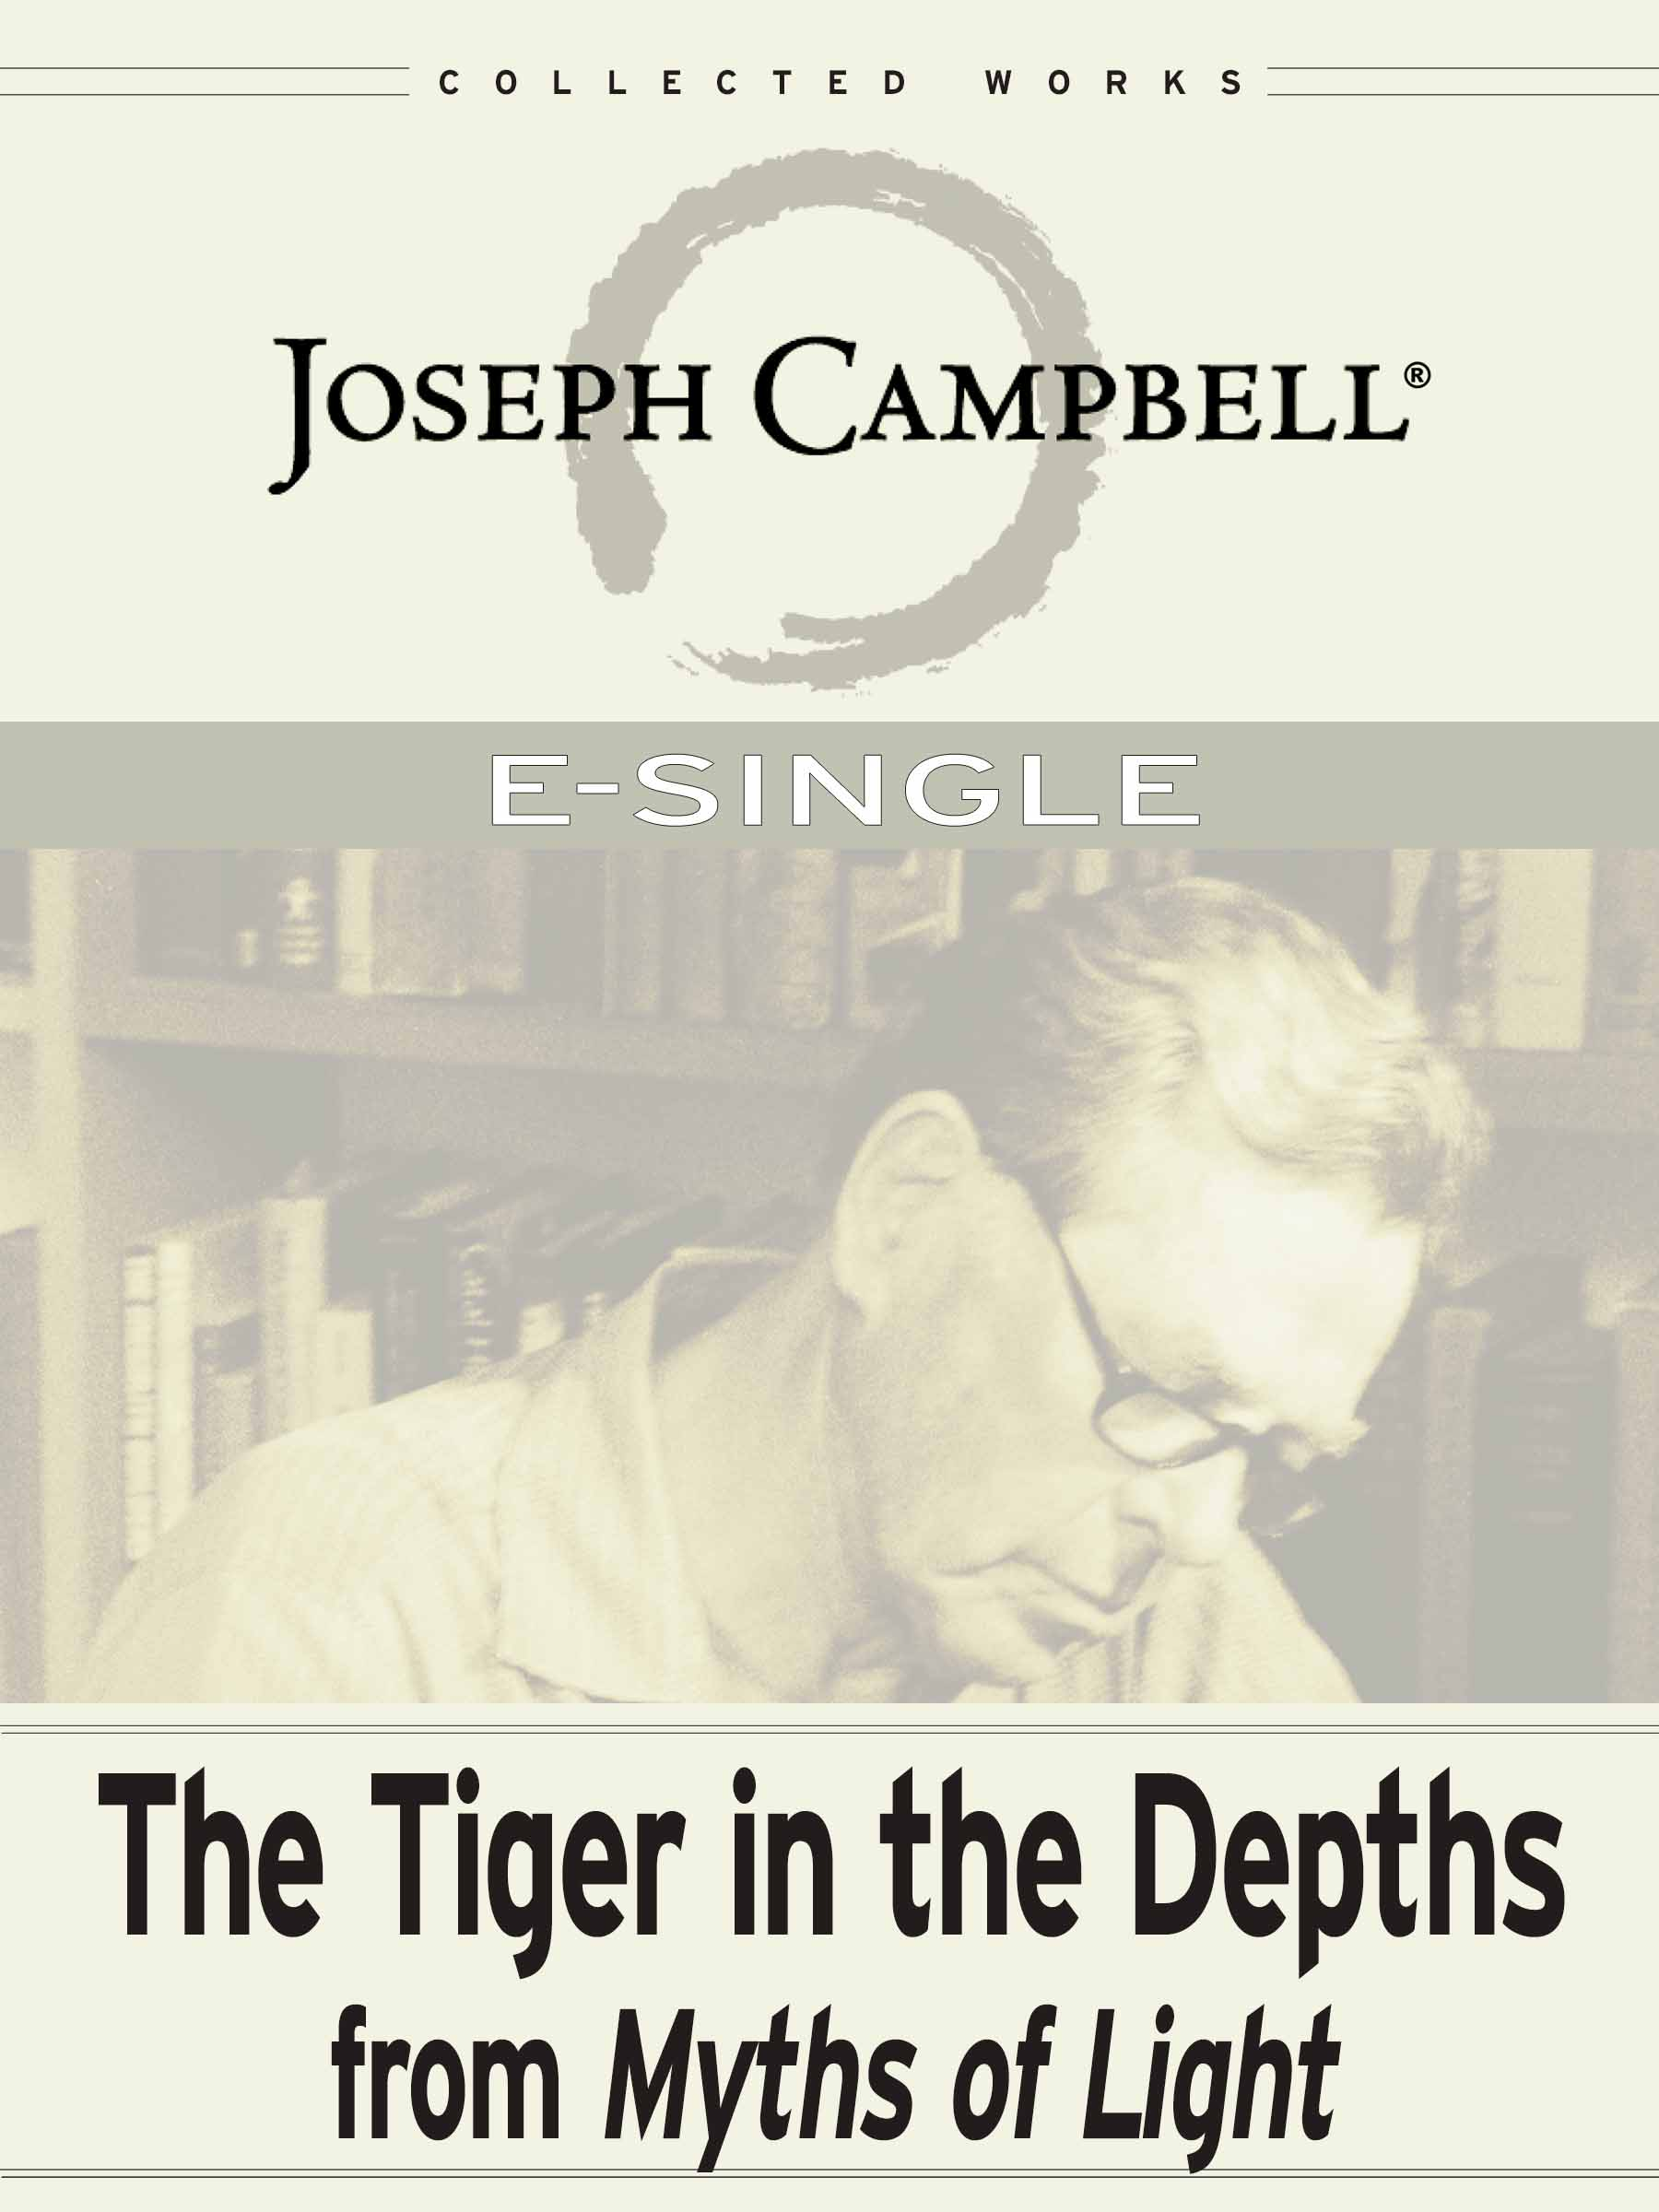 The Tiger in the Depths (eSingle)